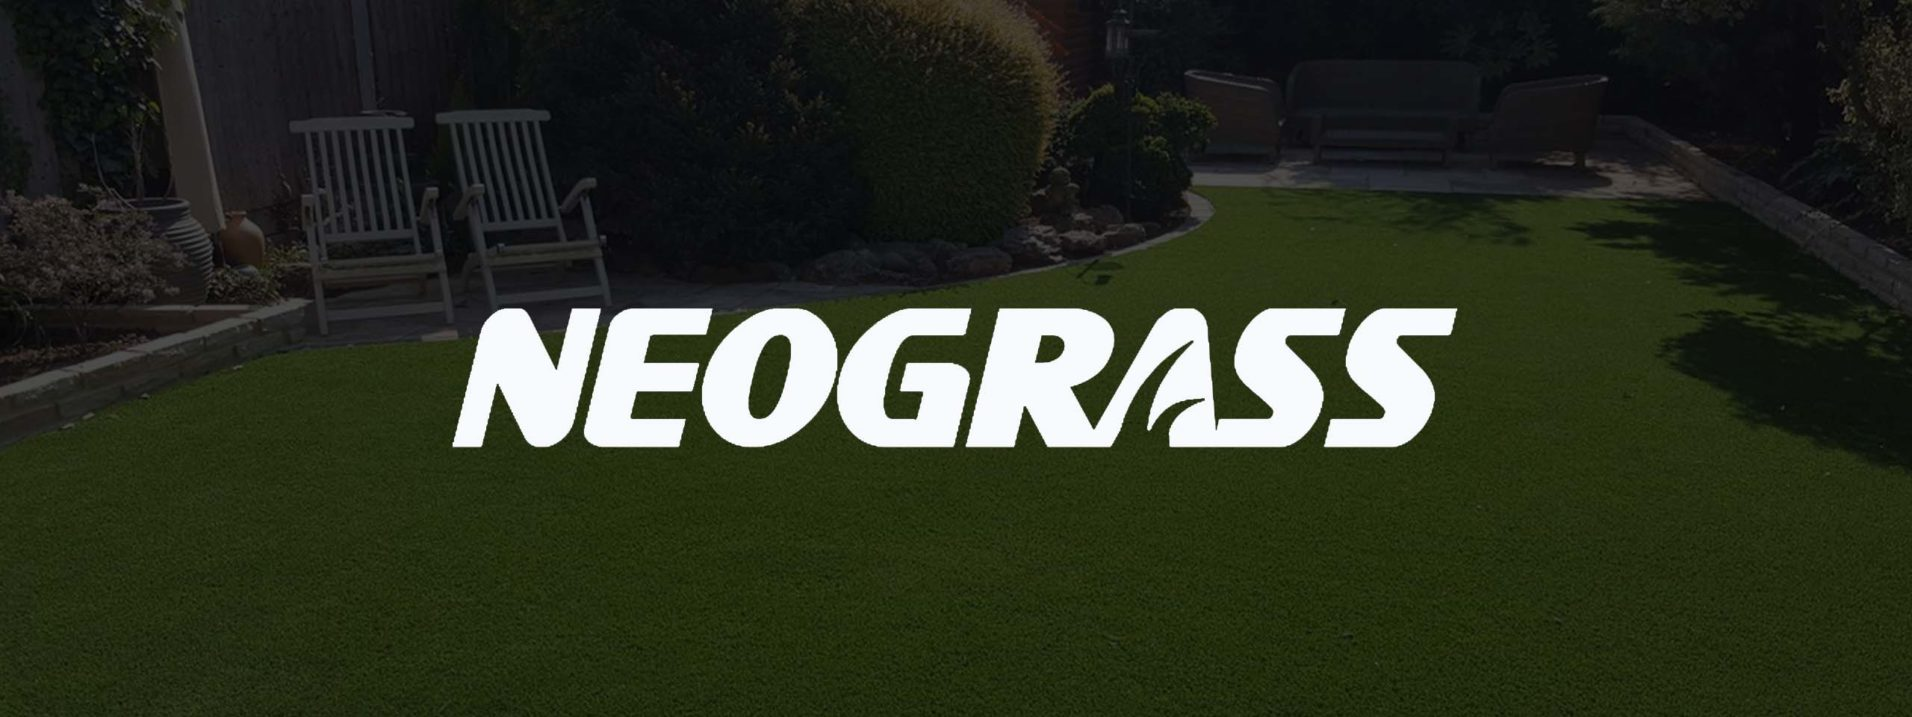 neograss-featured-image